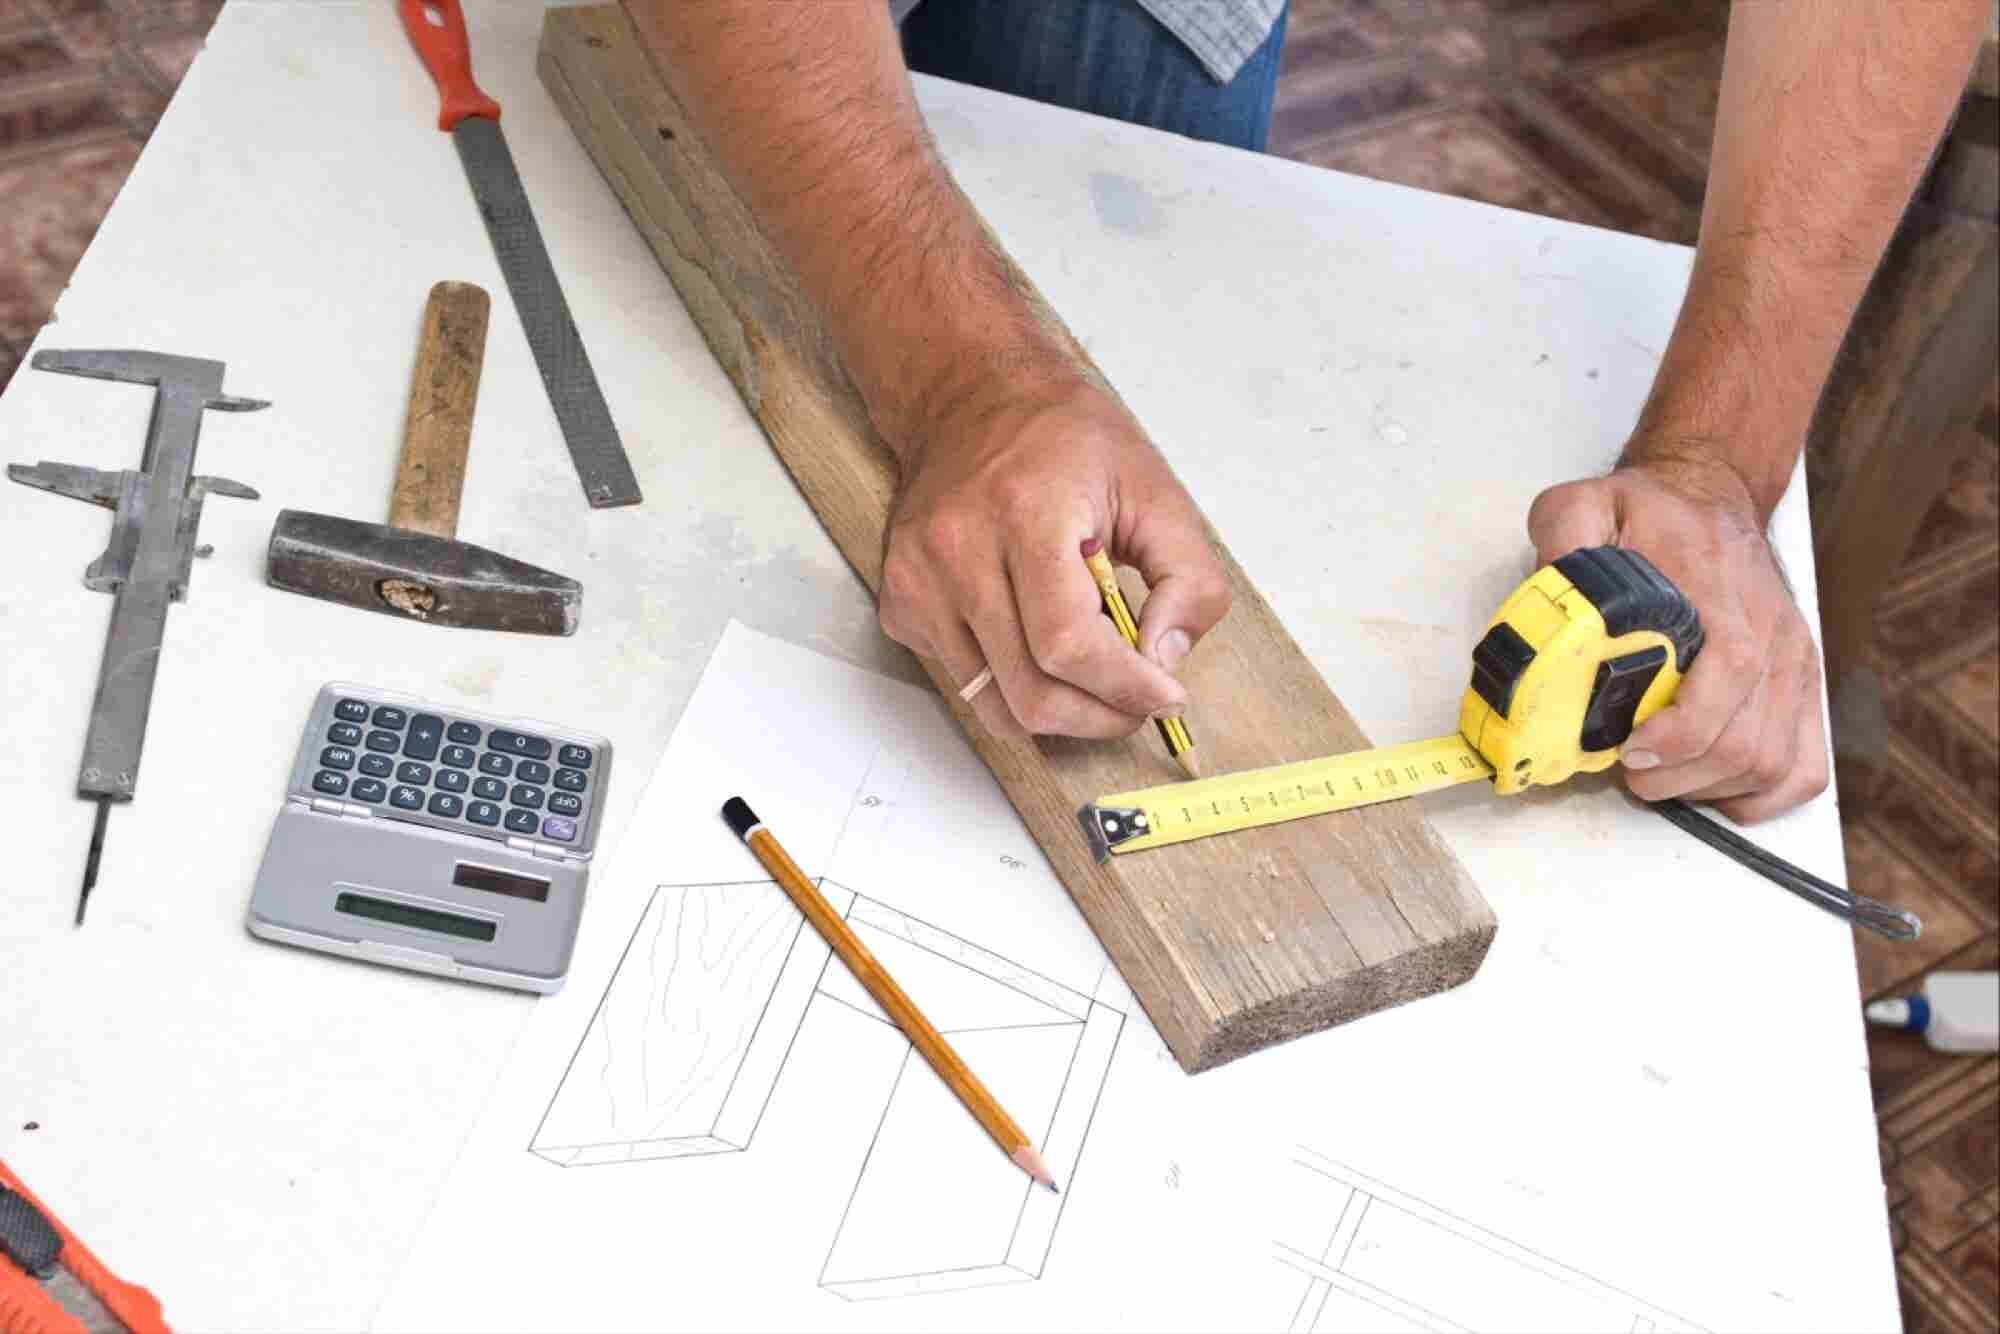 15 Tips for Growing a Long-Lasting Contractor Business